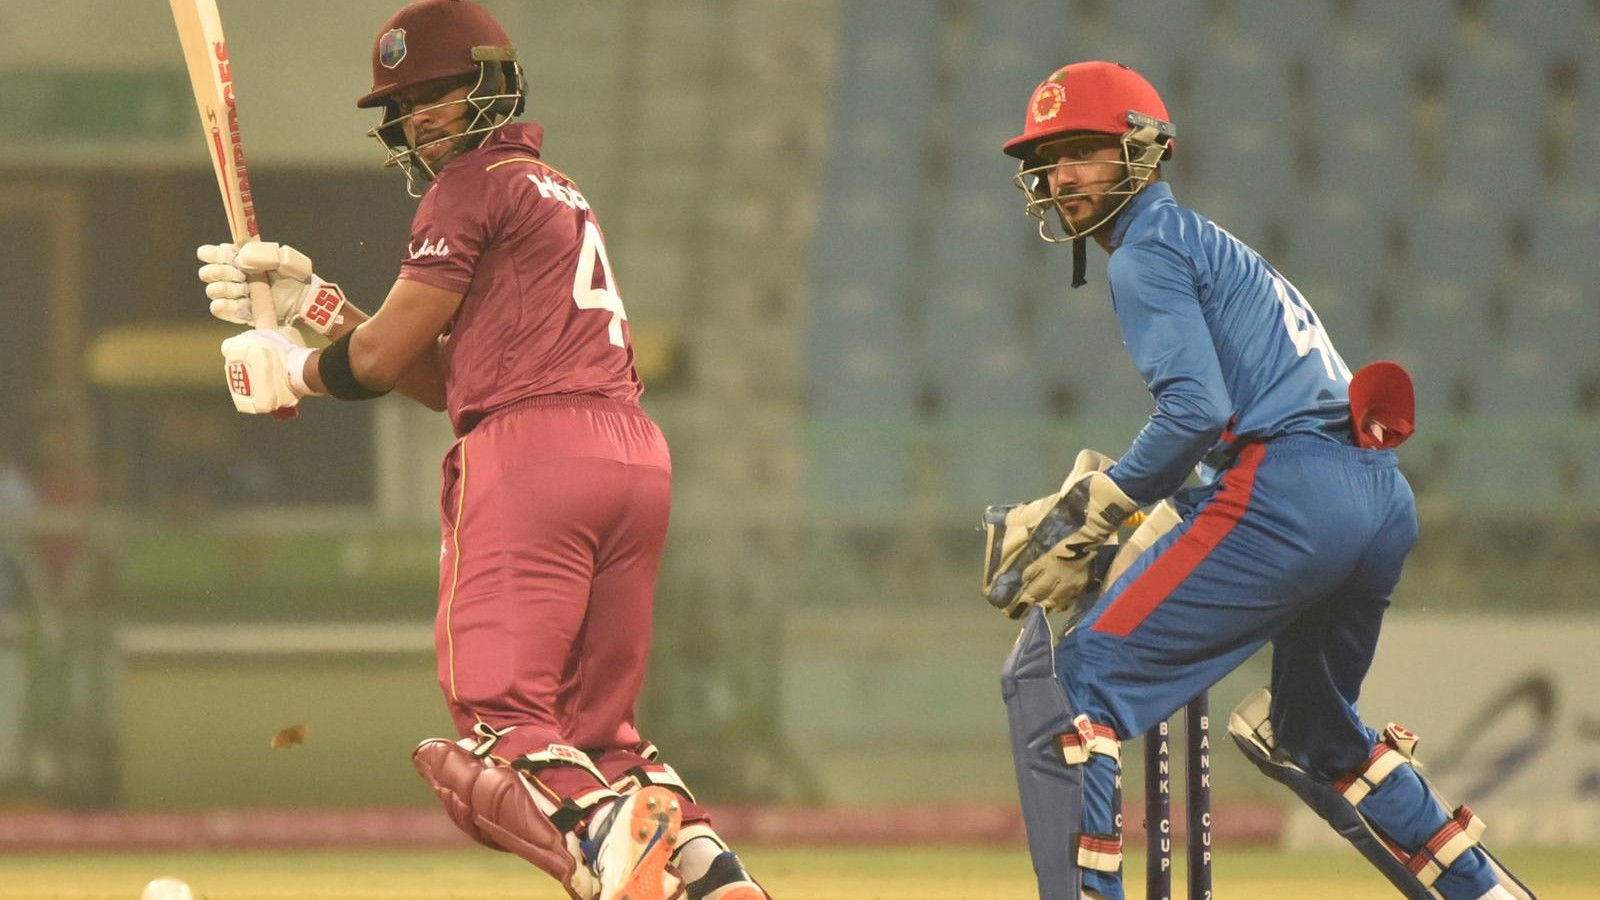 AFG v WI 2019: West Indies beat Afghanistan by 5 wickets in the final ODI to complete 3-0 whitewash